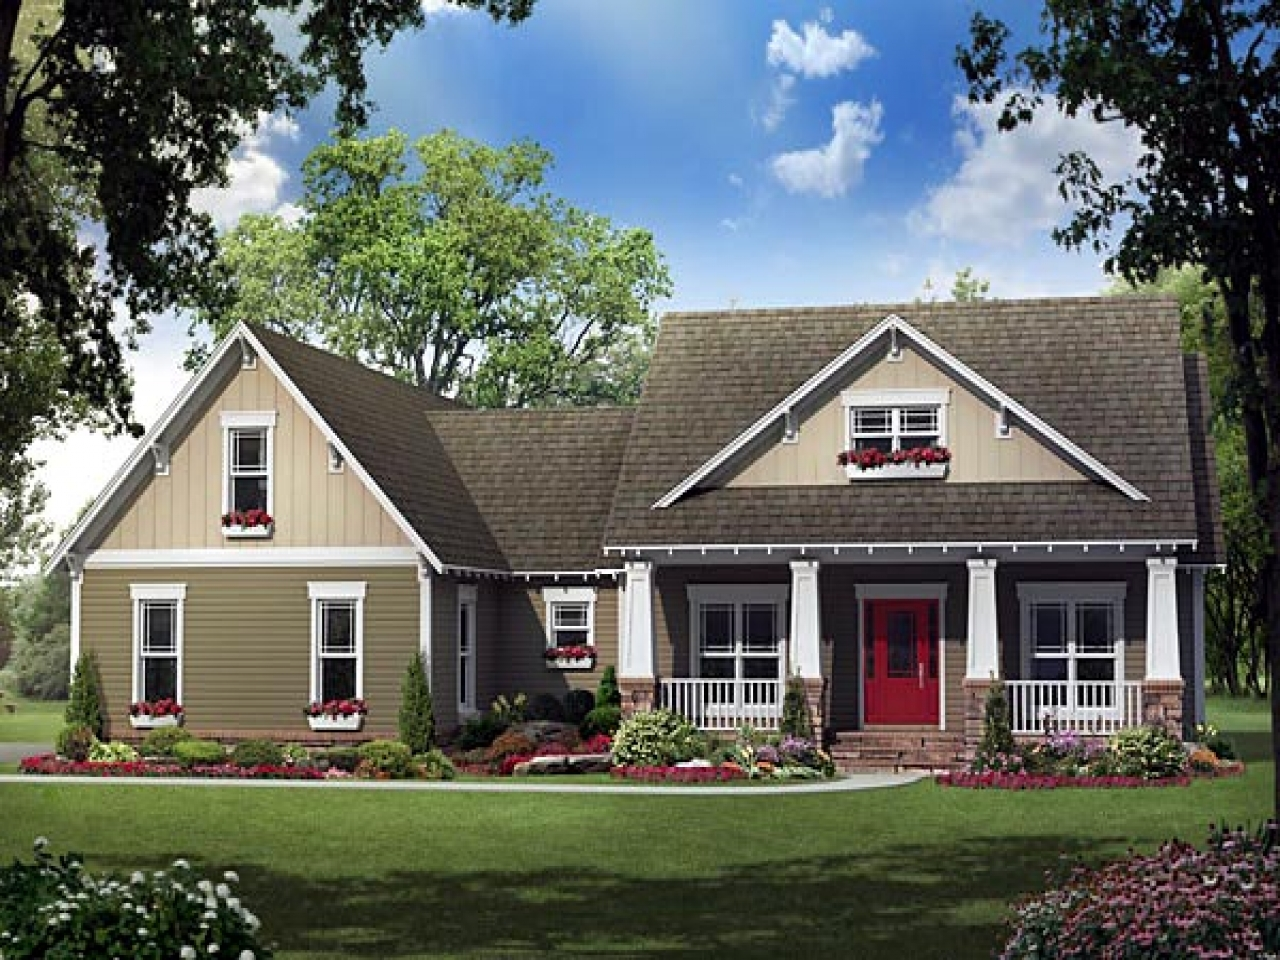 one story cottage style house plans craftsman style bungalow house plans bungalow houses with porches single story cottage plans 4109